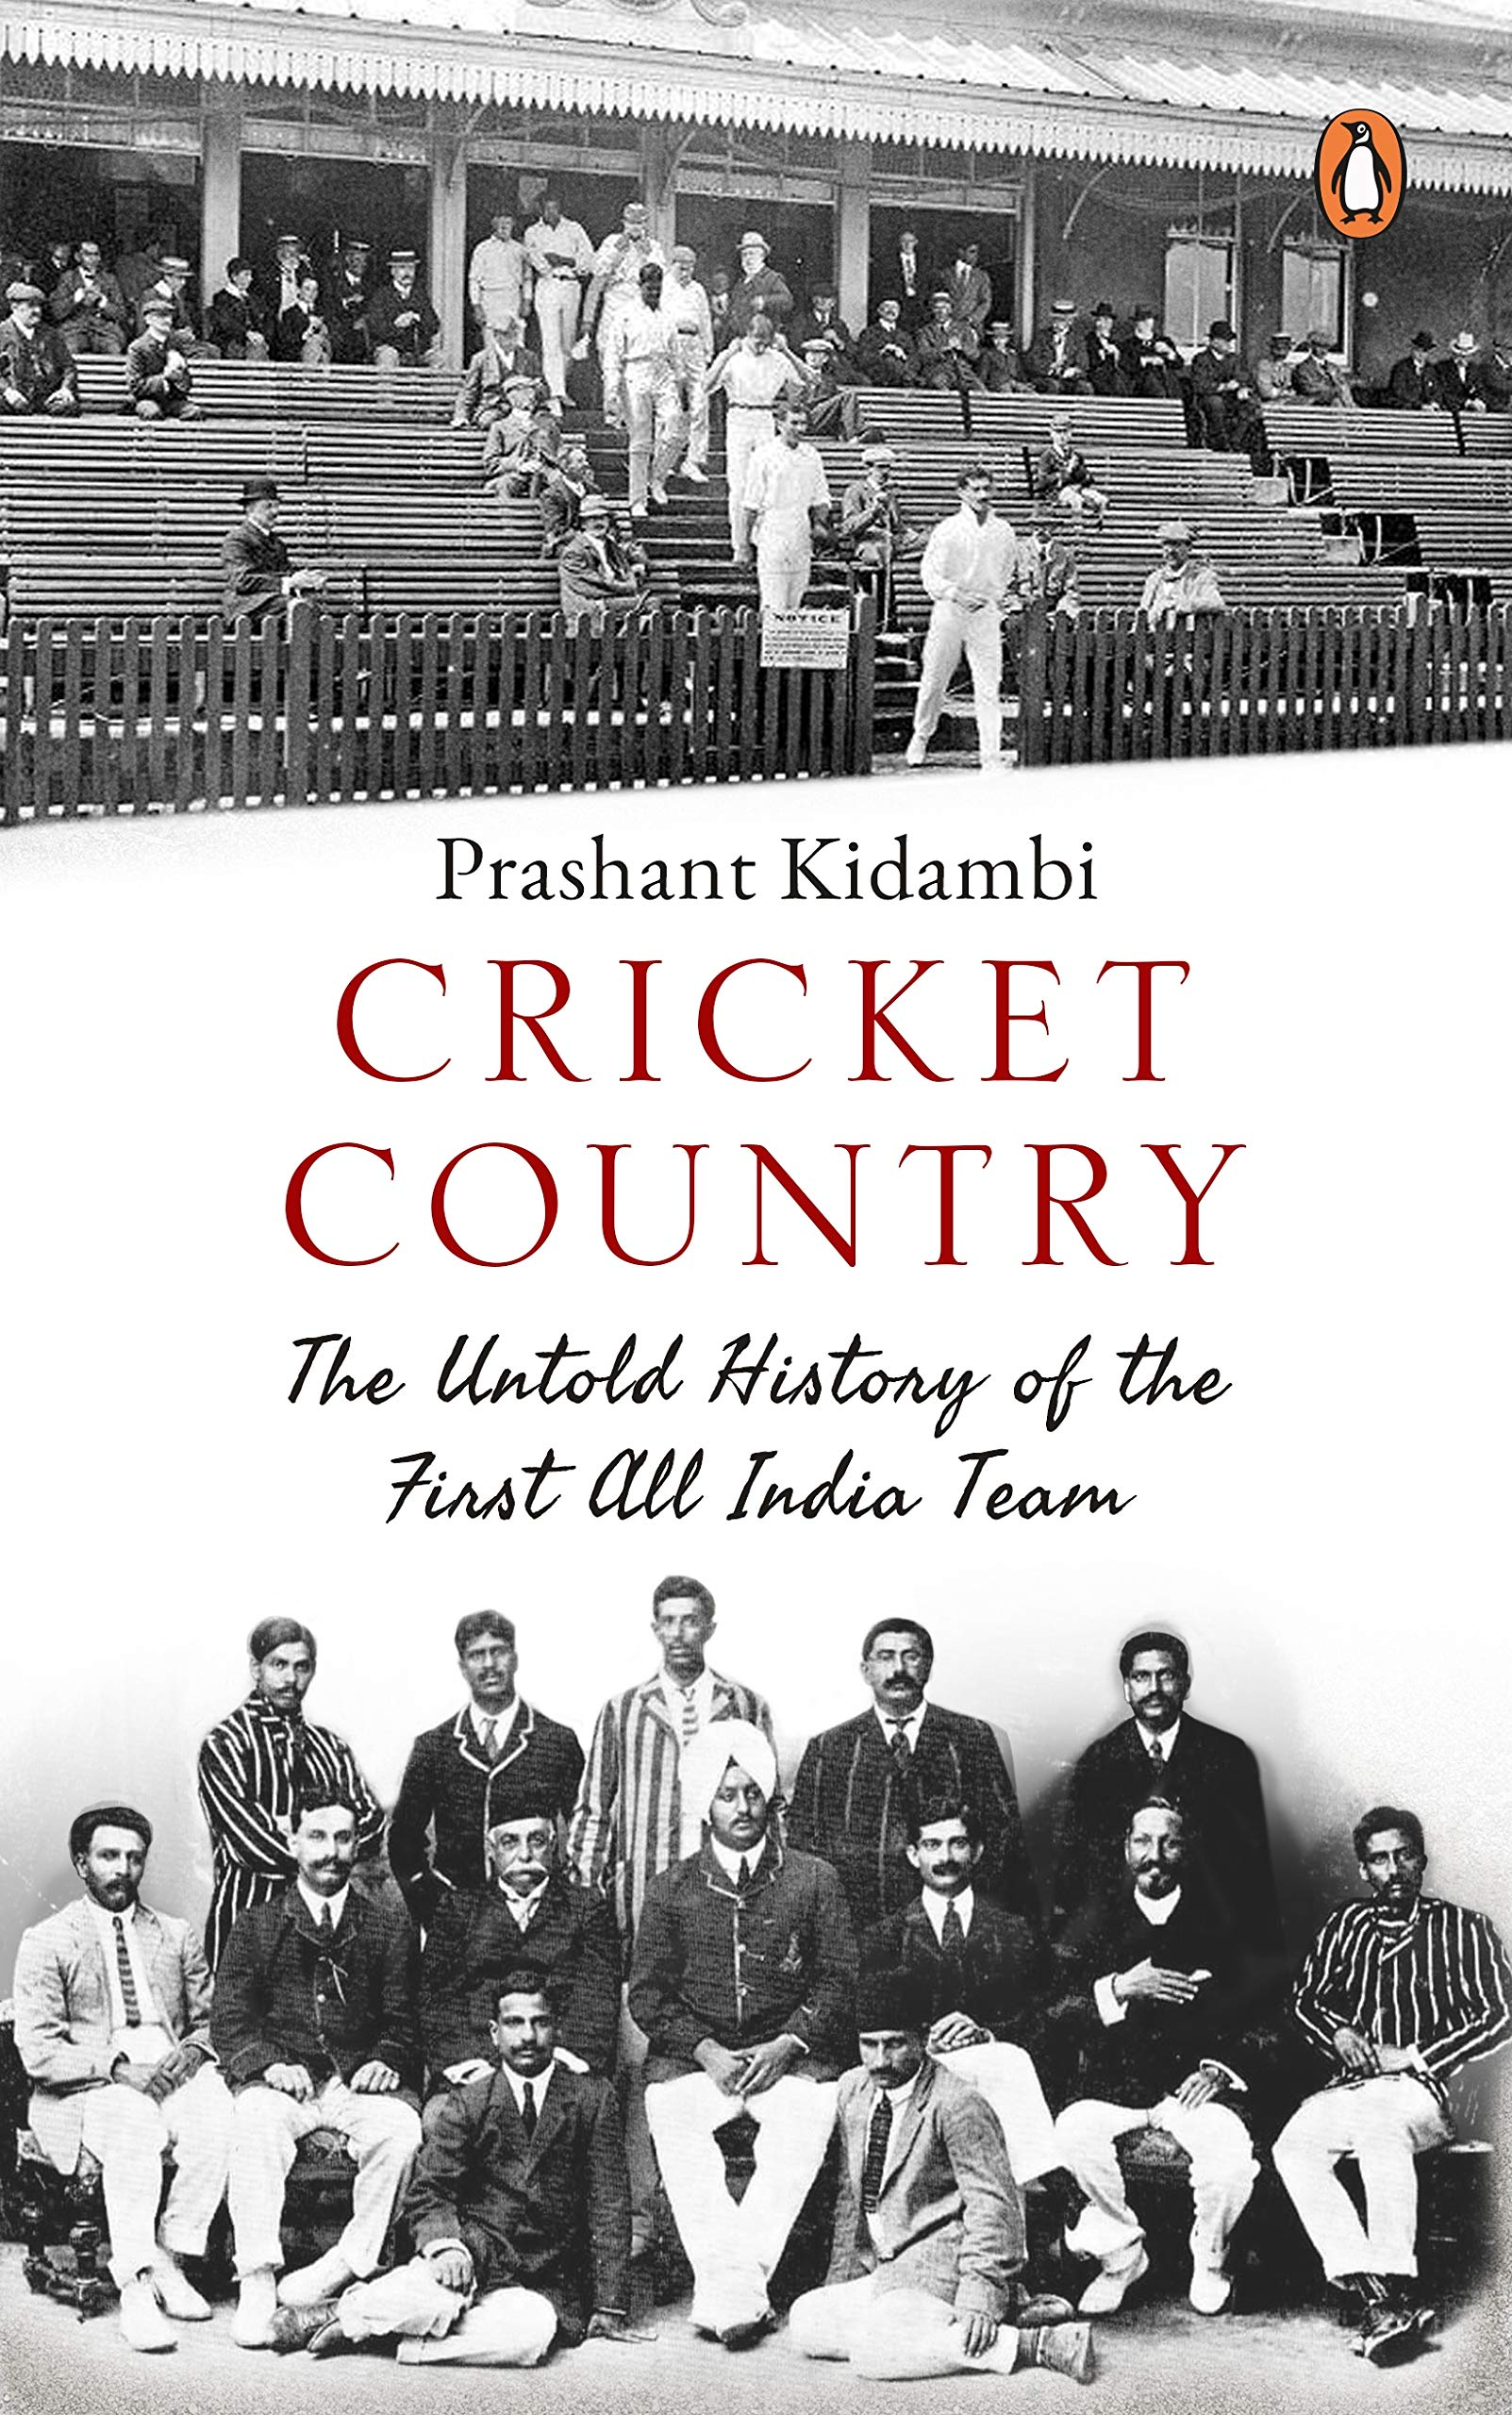 Buy Cricket Country: The Untold History of the First All